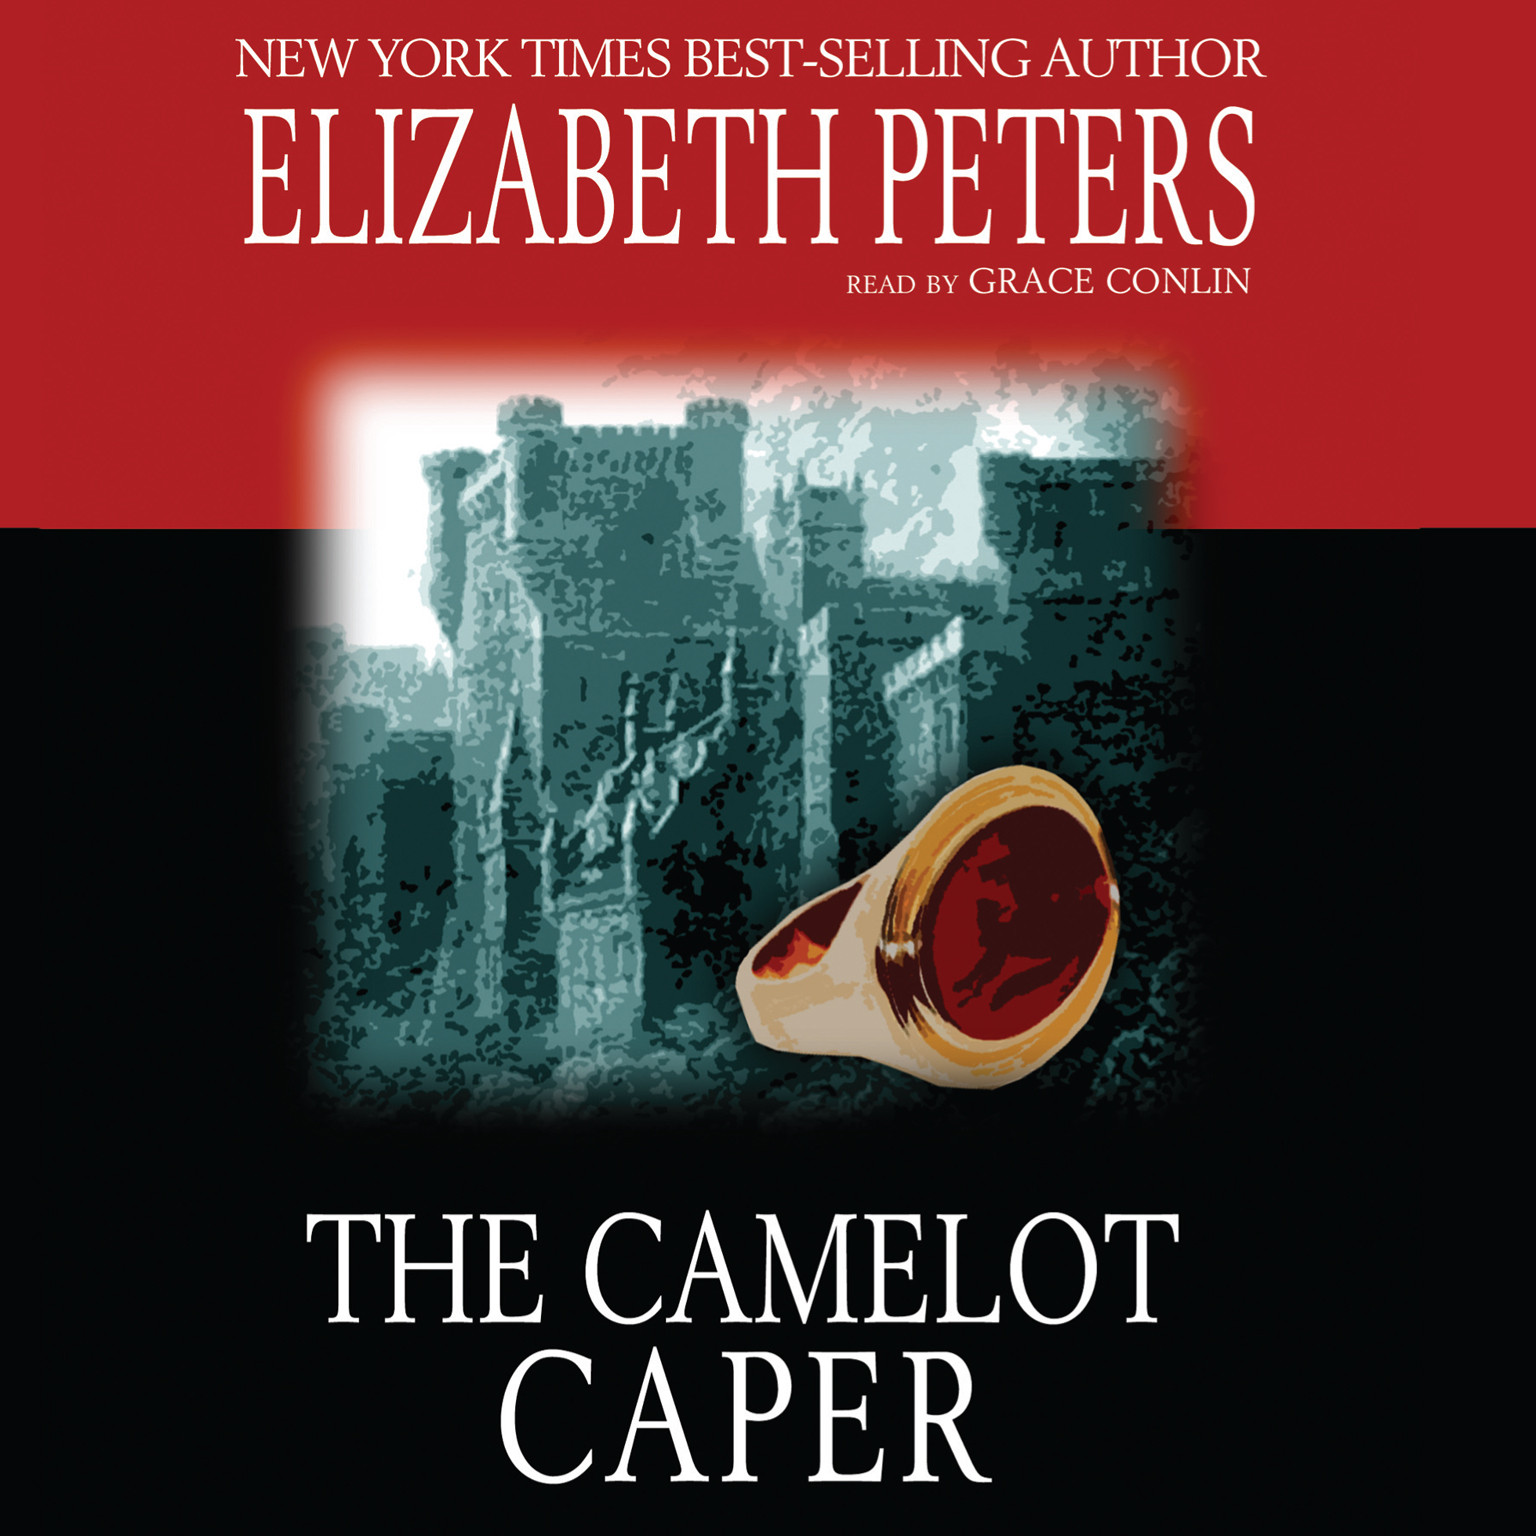 Printable The Camelot Caper Audiobook Cover Art